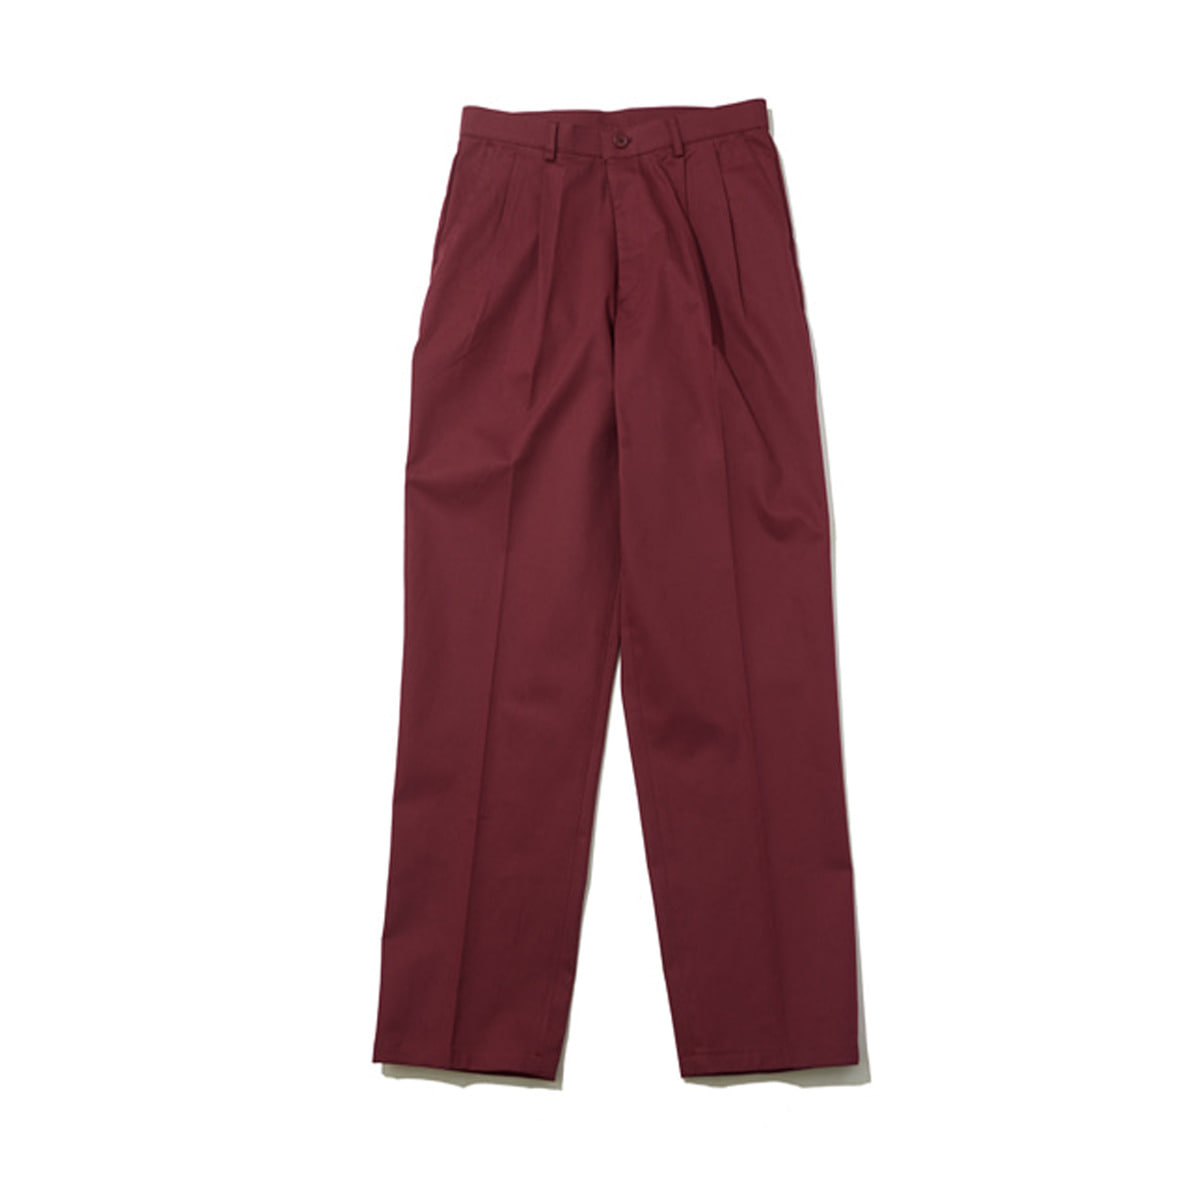 Primary Cotton Pants, Burgundy